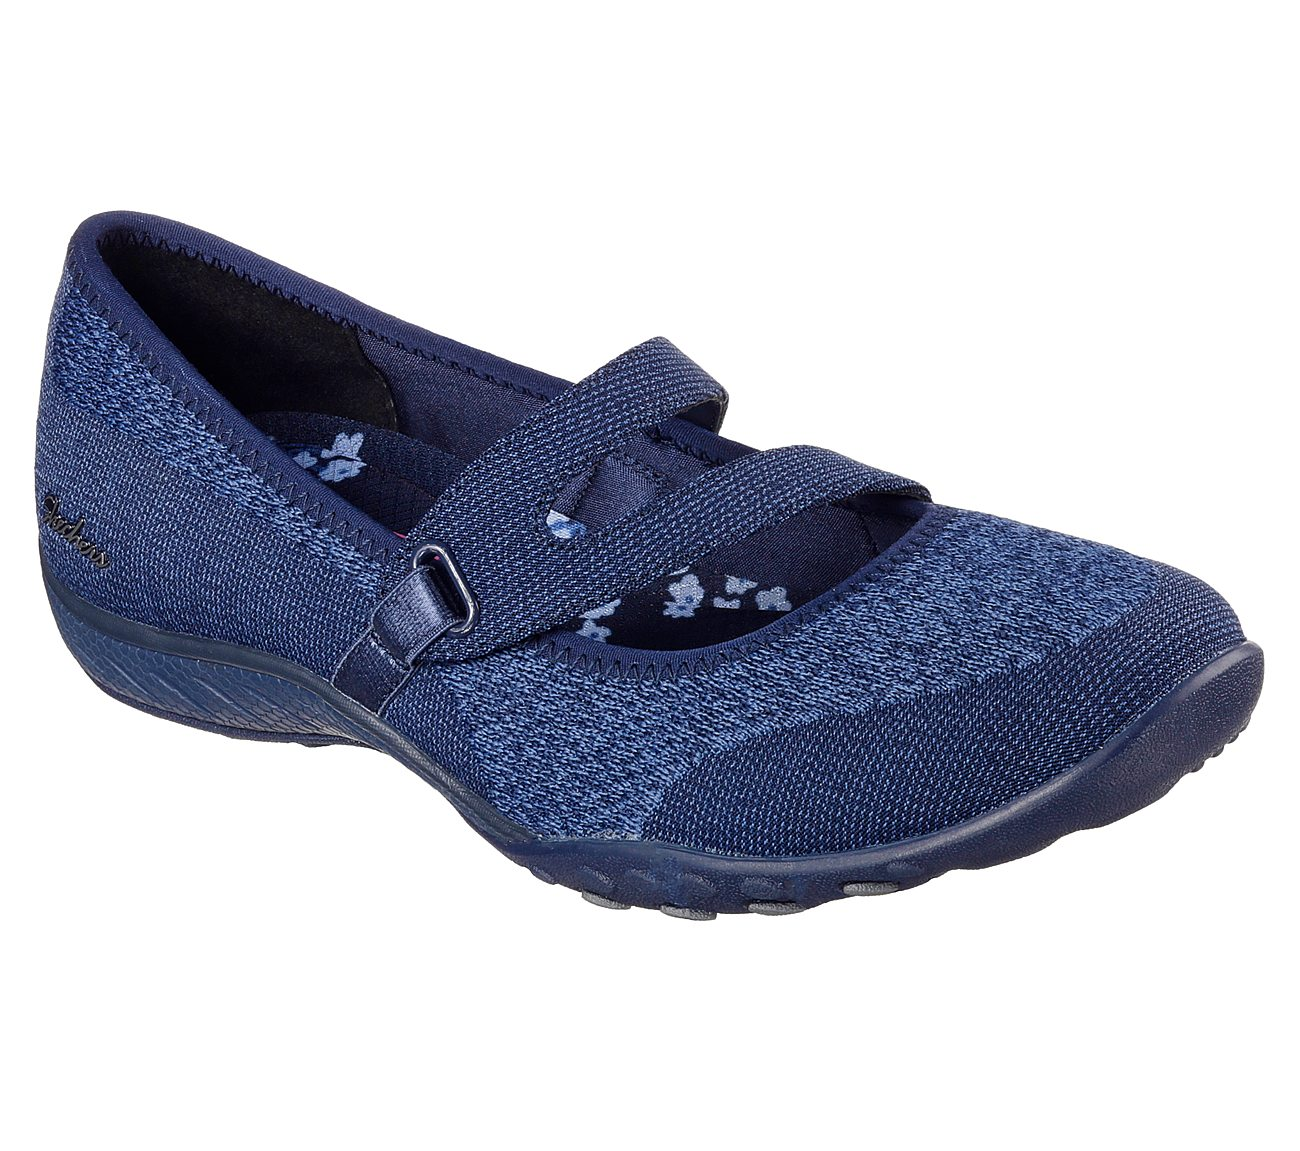 Sketchers Shoes Breathe Easy Lucky Lady